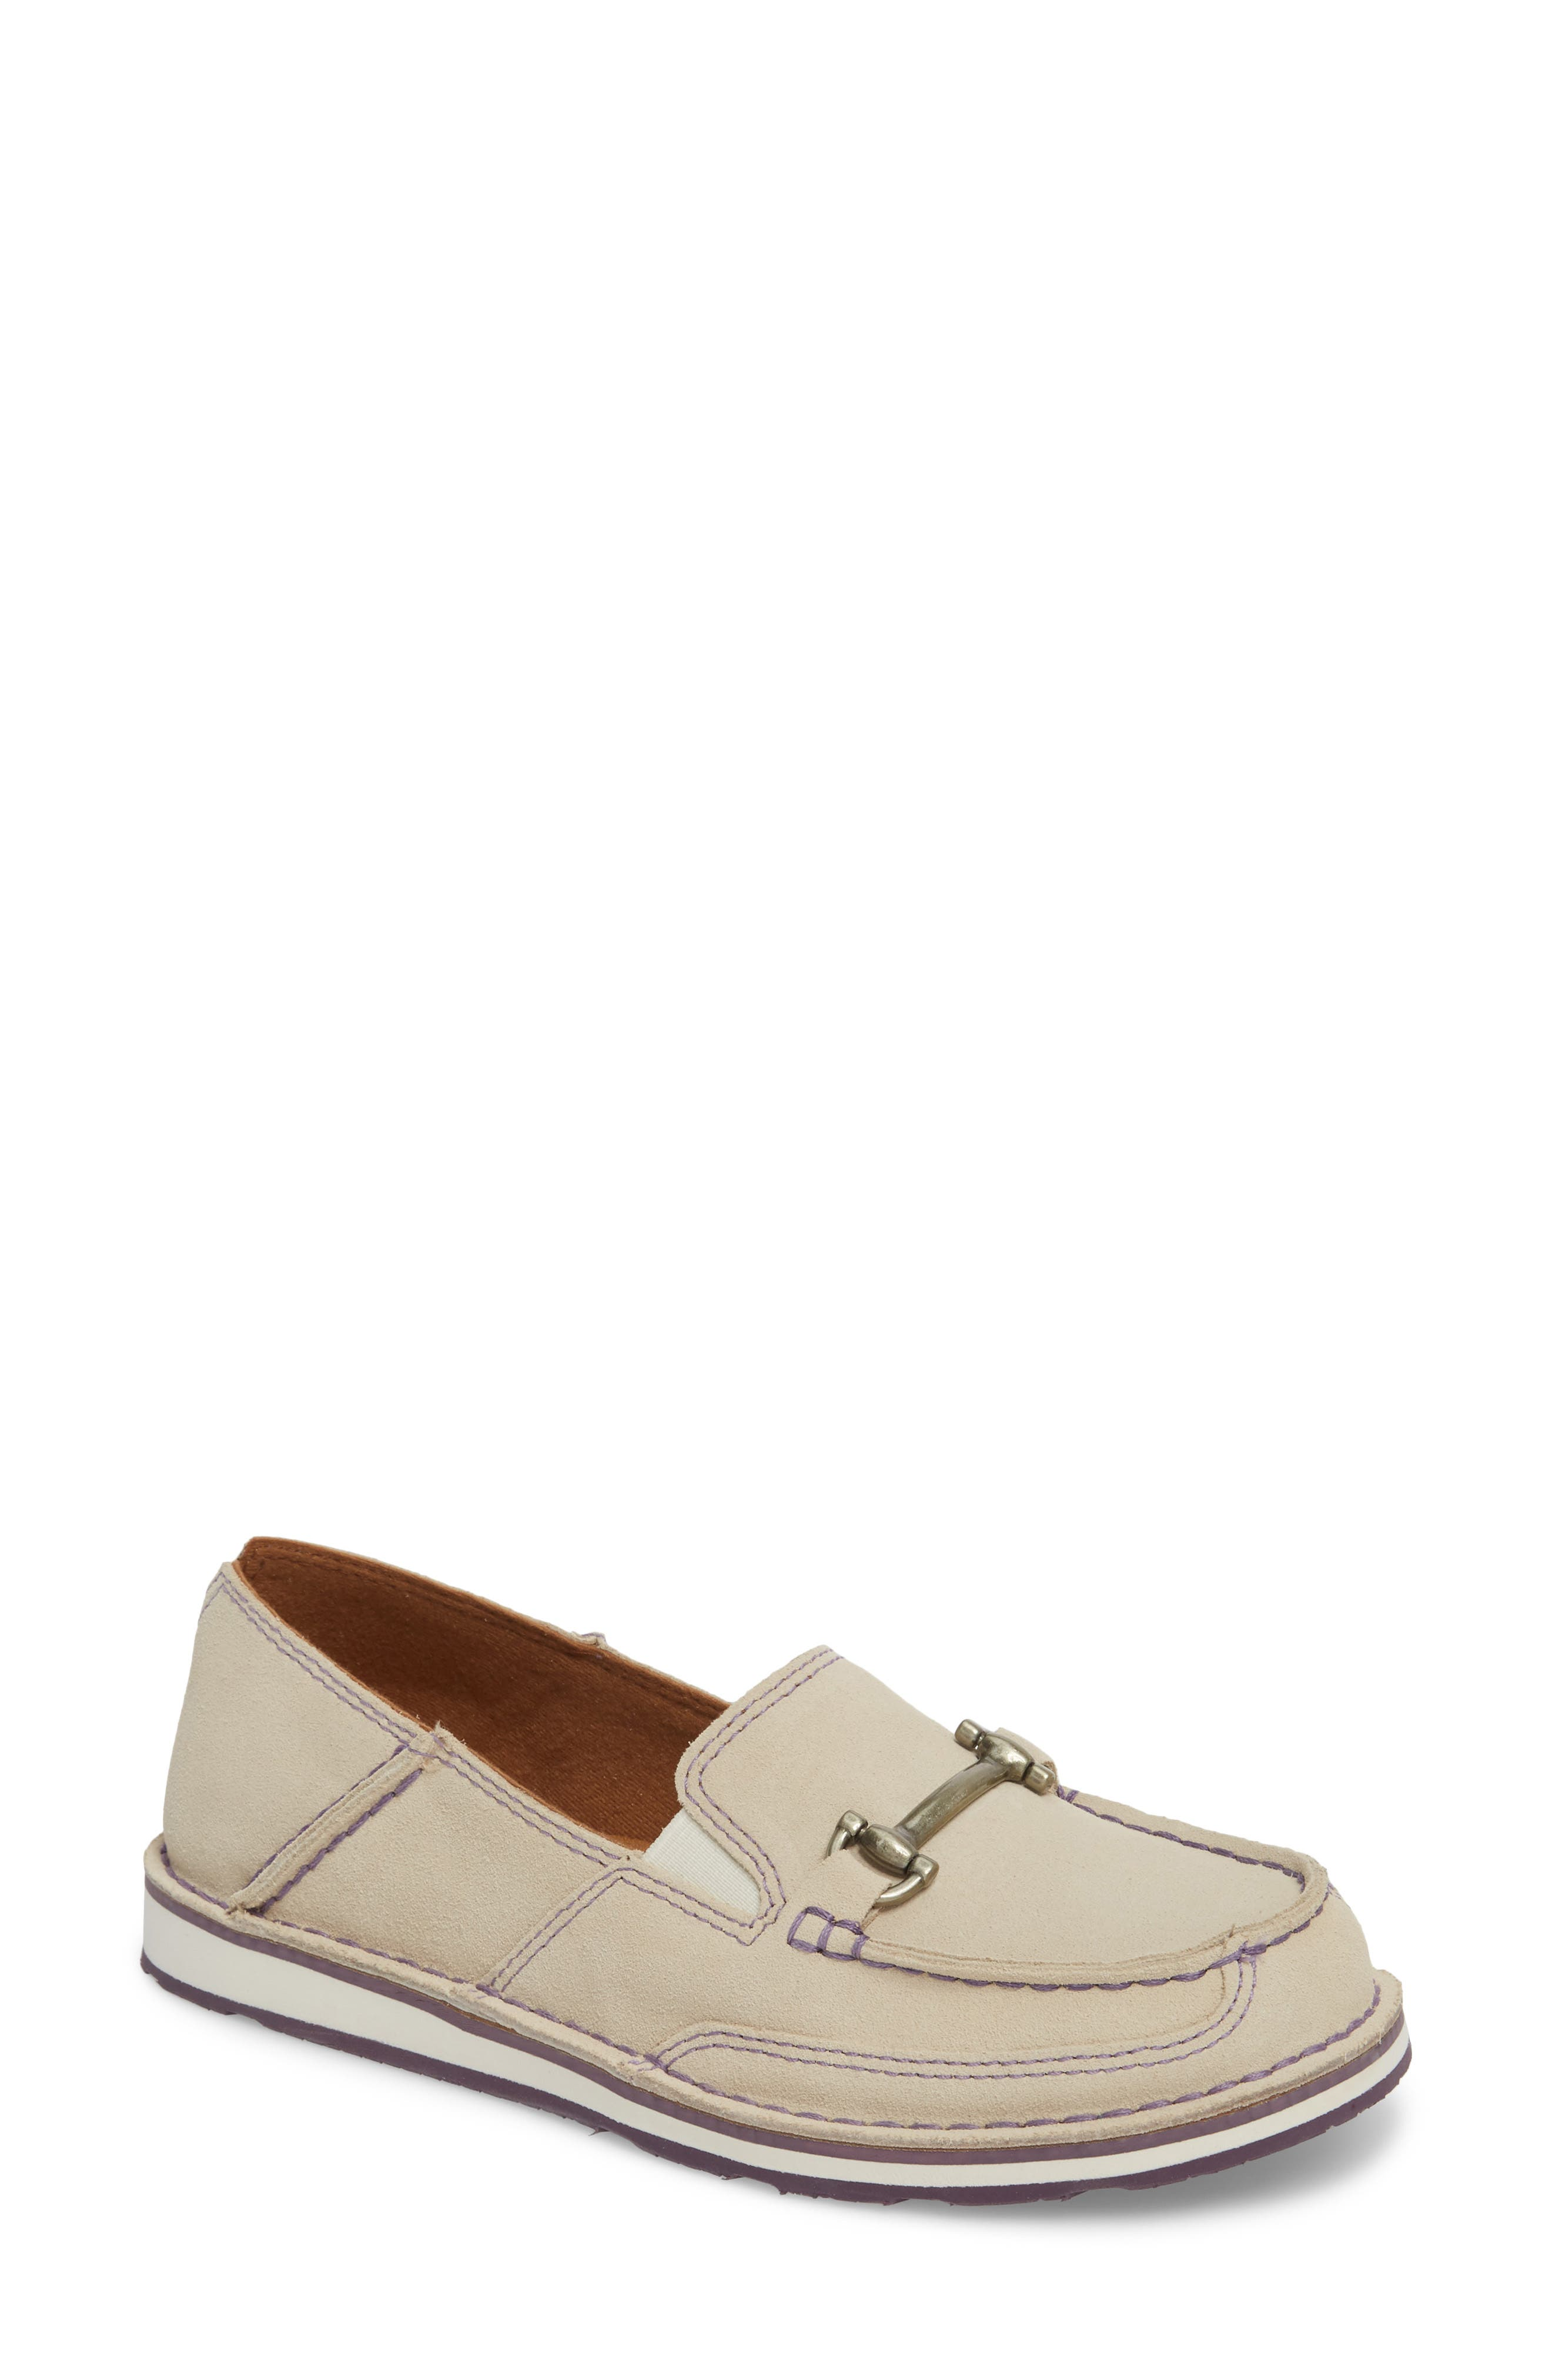 ARIAT,                             Cruiser Castaway Loafer,                             Main thumbnail 1, color,                             CRUISER SAND SUEDE